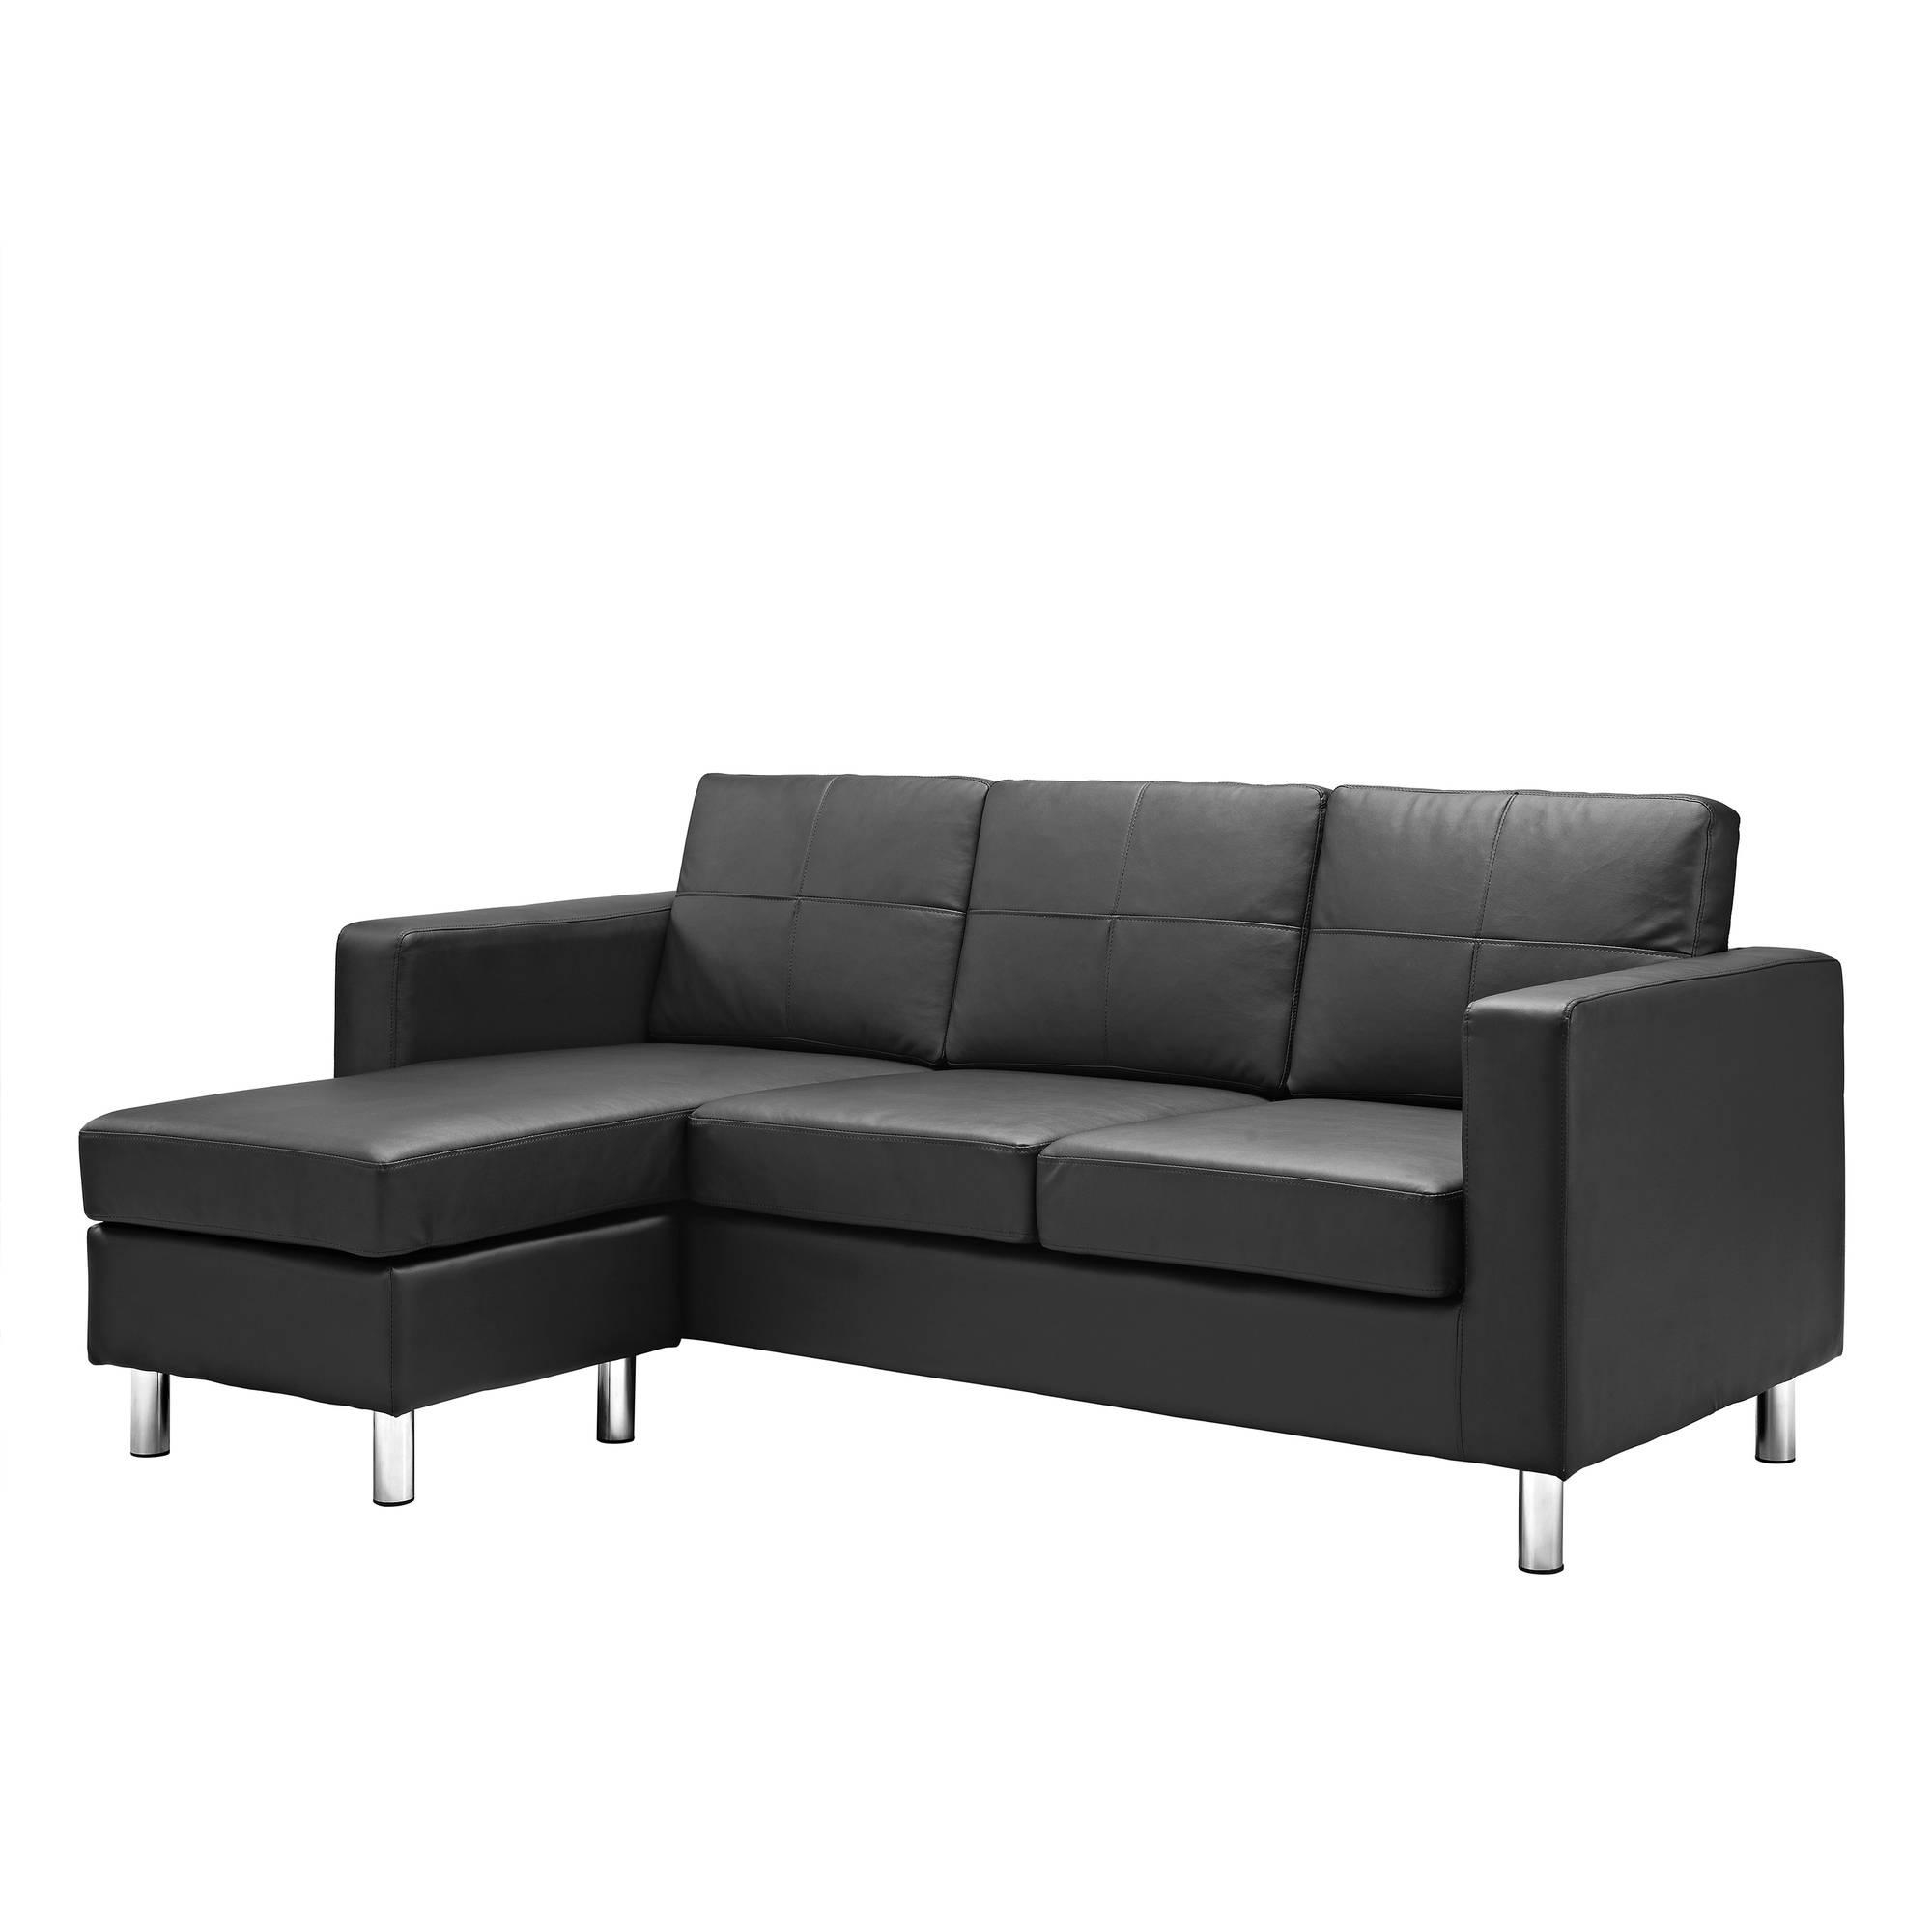 Dorel Living Small Spaces Configurable Sectional Sofa, Multiple Inside Mini Sectional Sofas (Image 5 of 20)